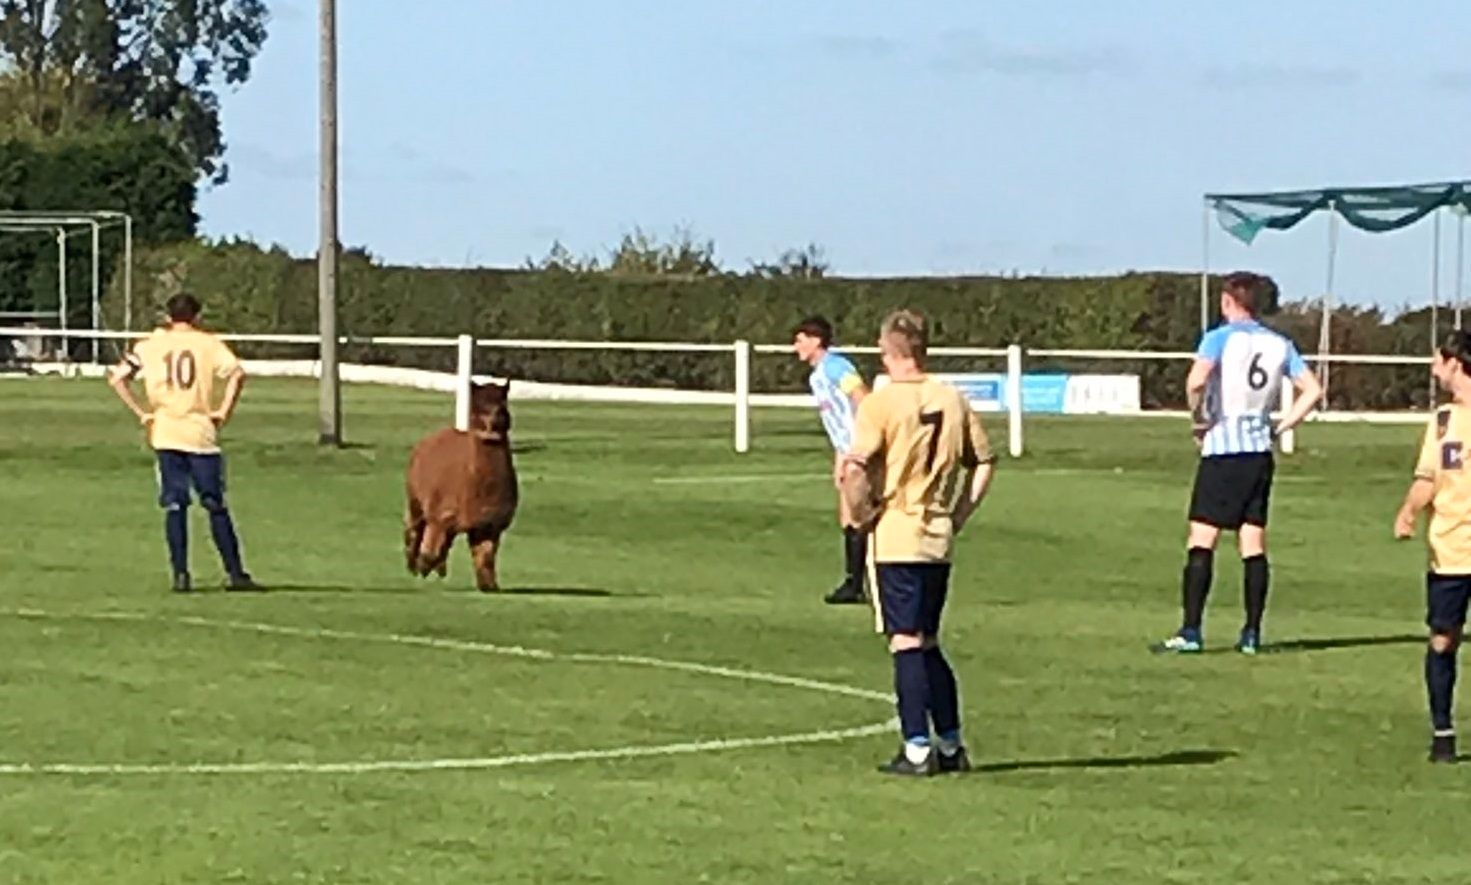 Alpaca invades pitch during Ilkley Town match